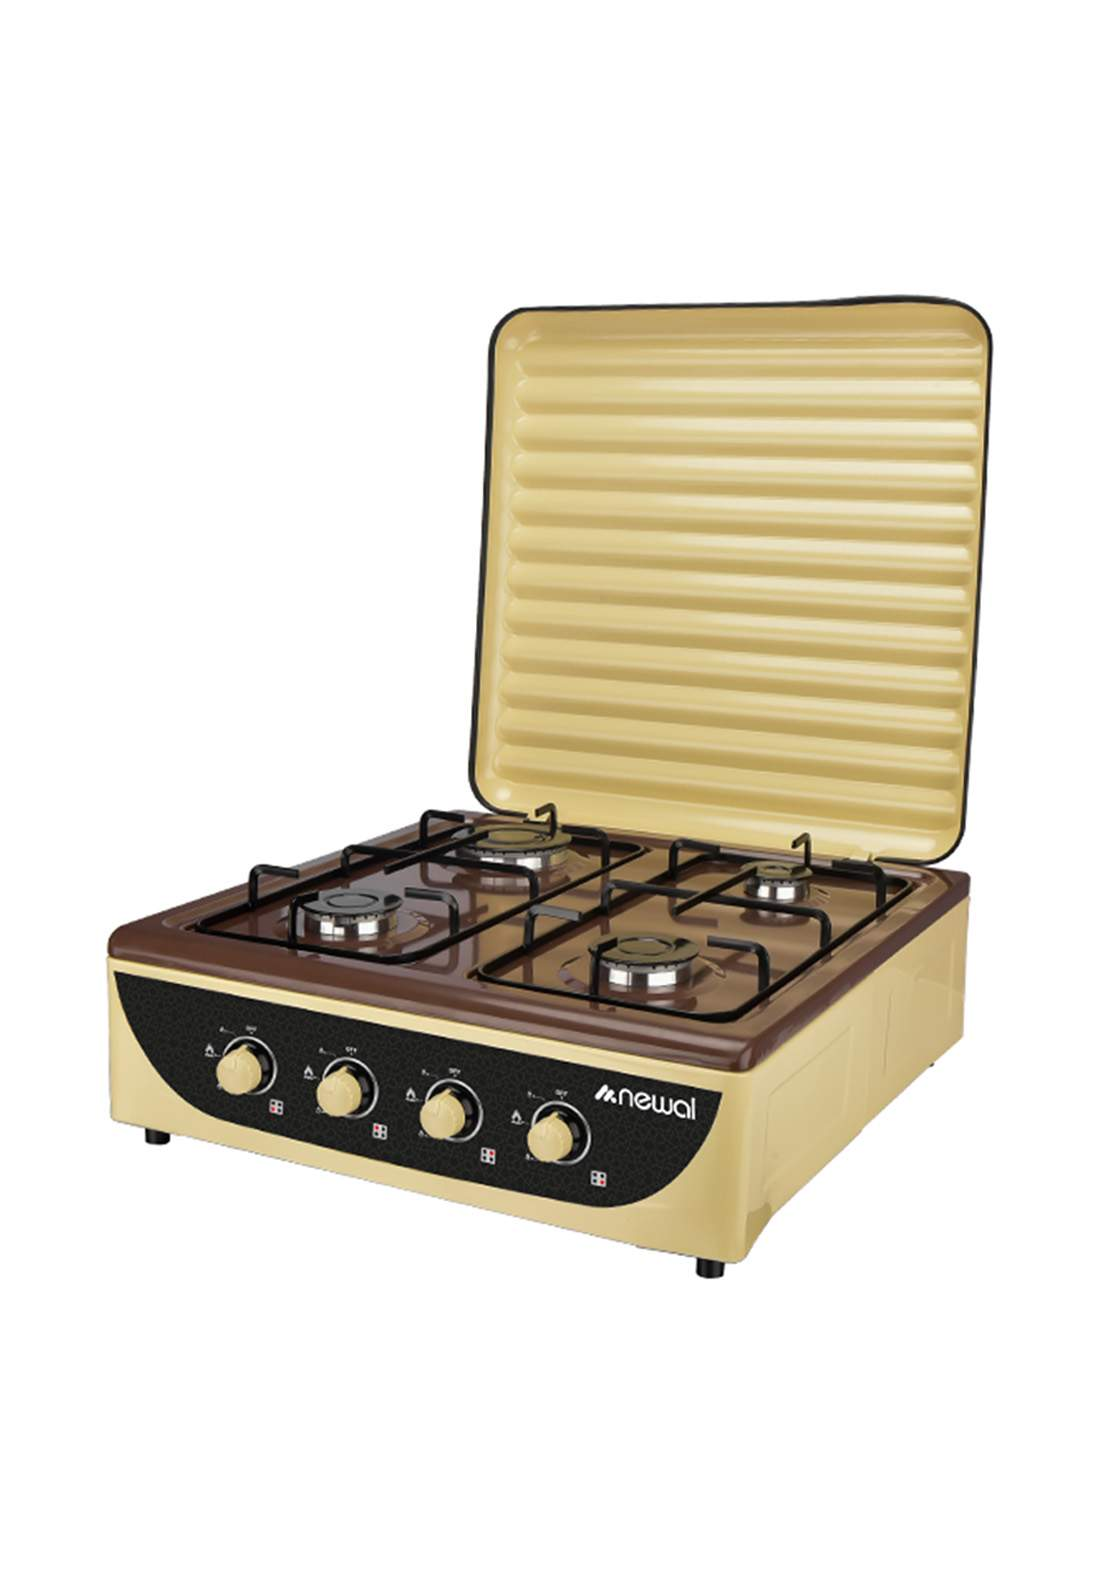 Newal Hob-236-04 Tabletop Cooker 4 Cooking Places  طباخ منضدي